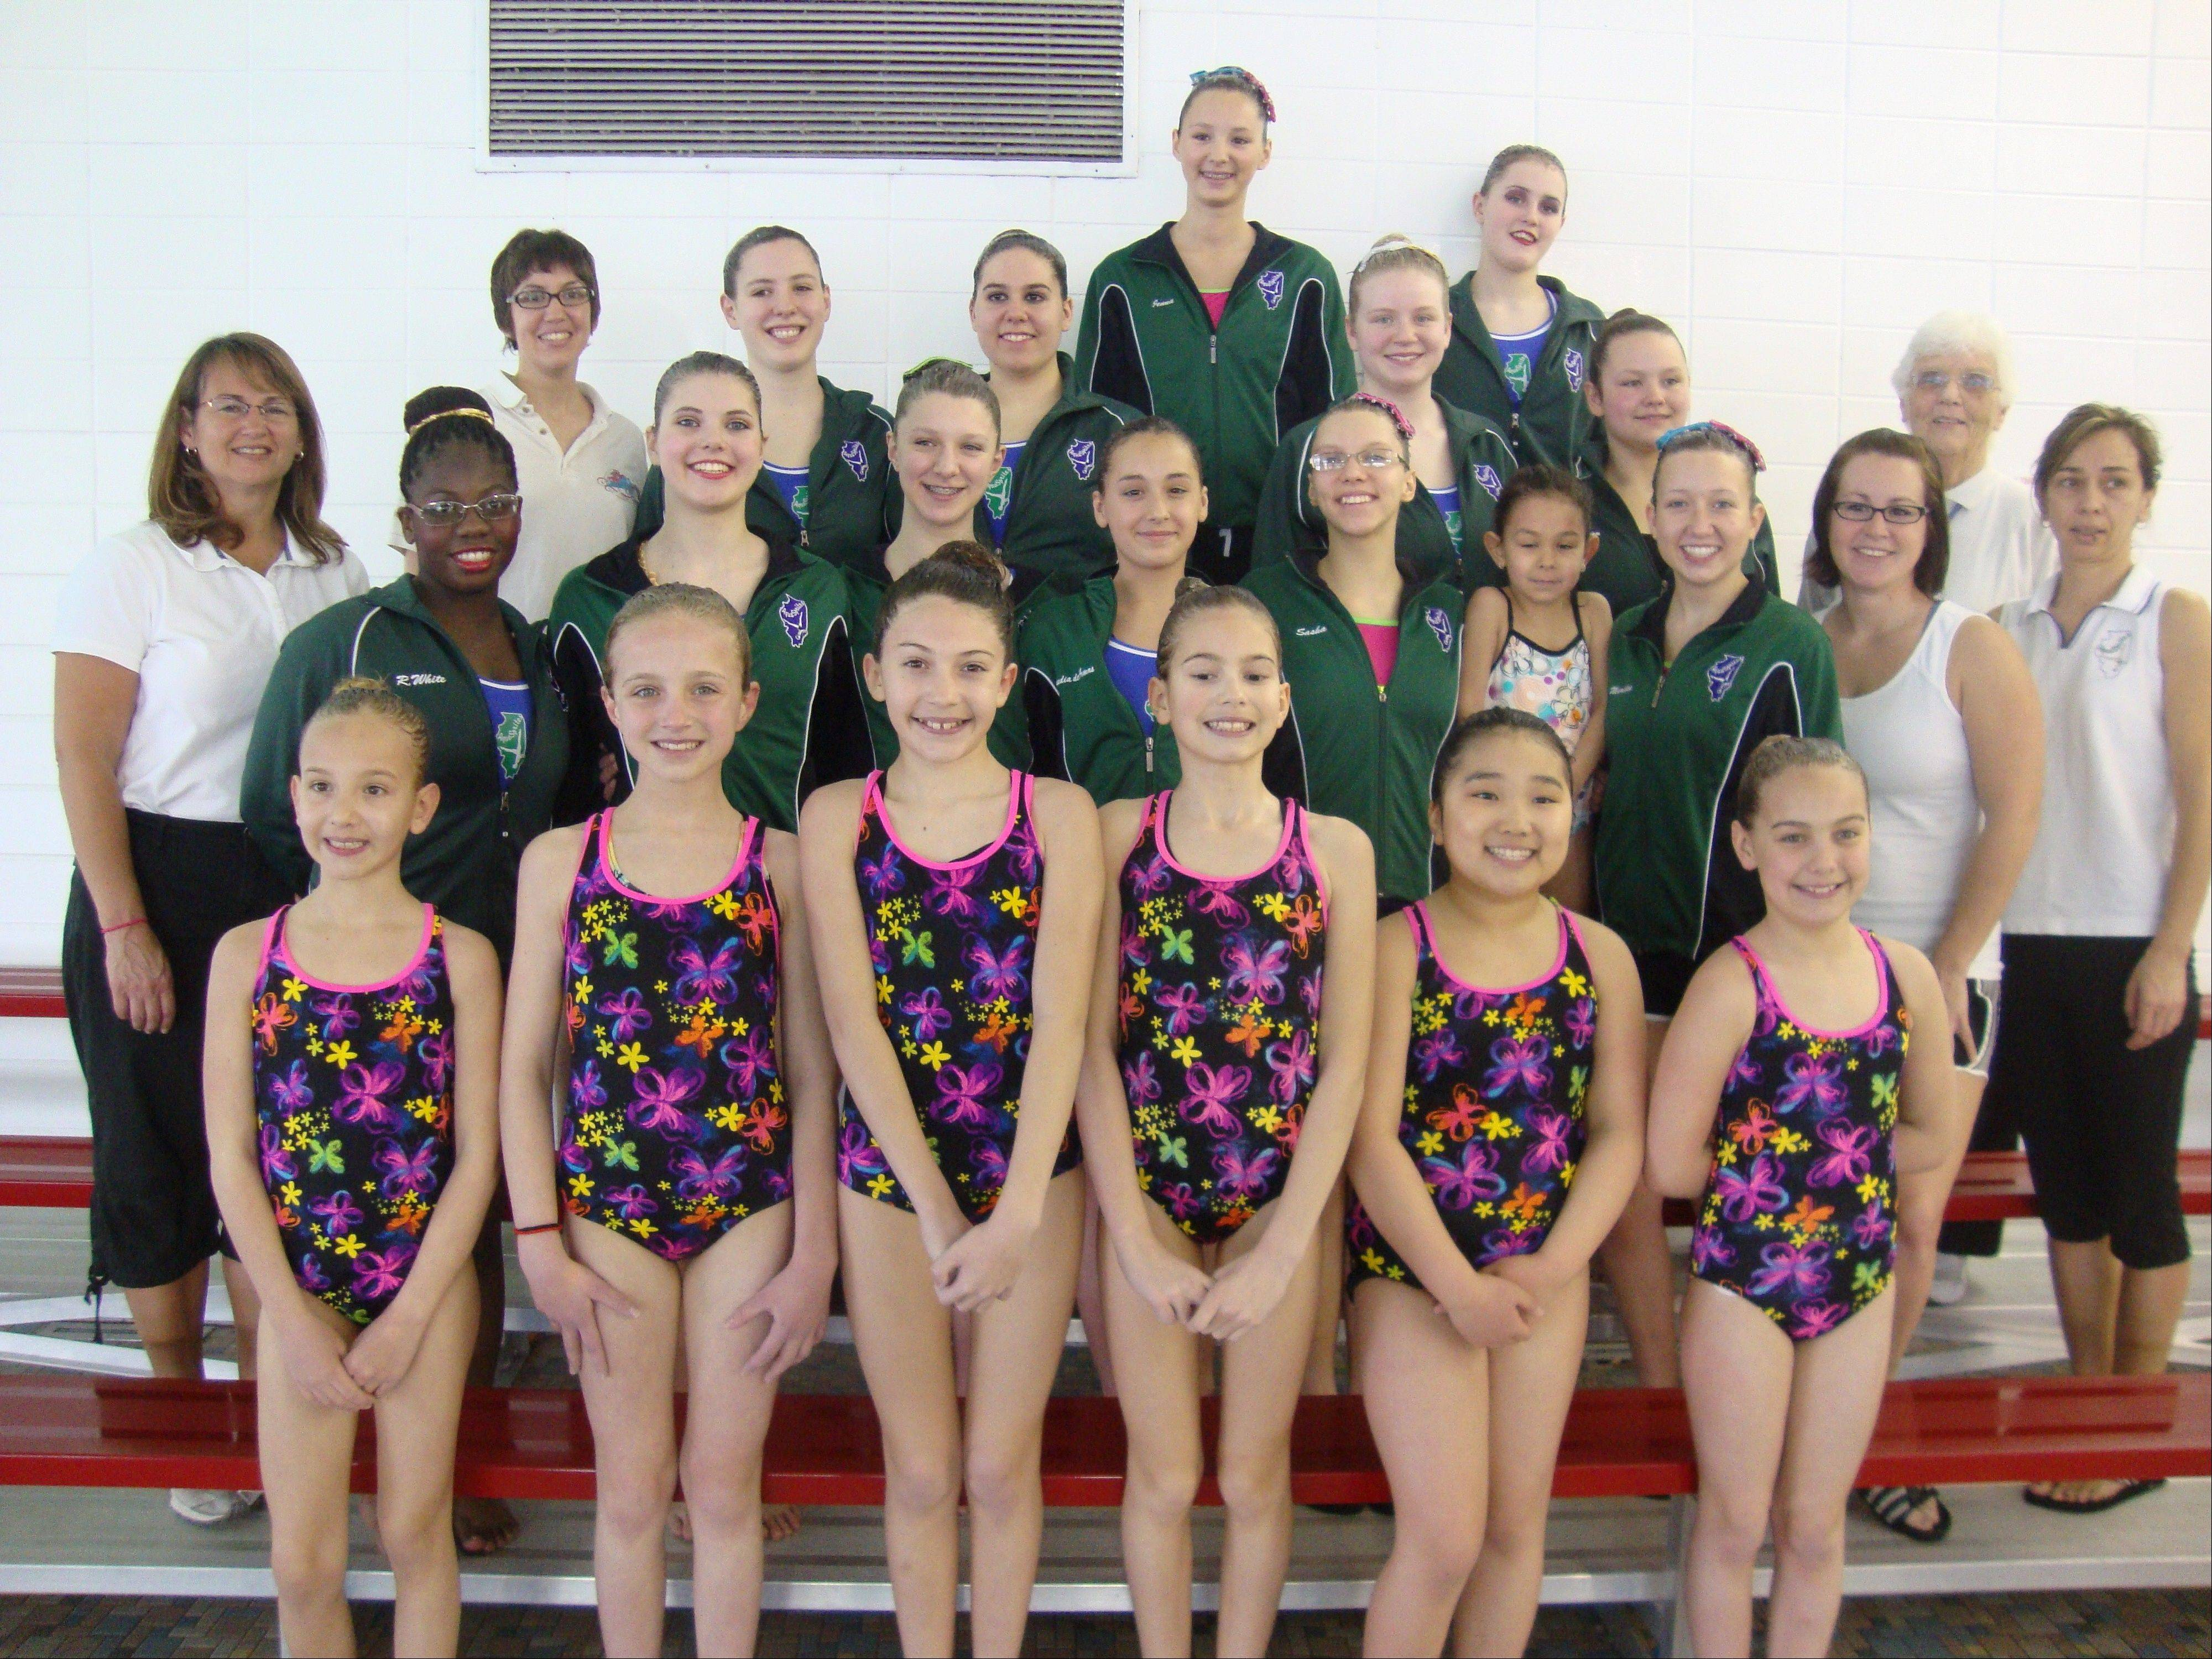 A synchronized swimming demonstration will be performed by the AquaSprites Youth & Masters Teams on Saturday, Aug. 10, at Lattof YMCA, in Des Plaines.